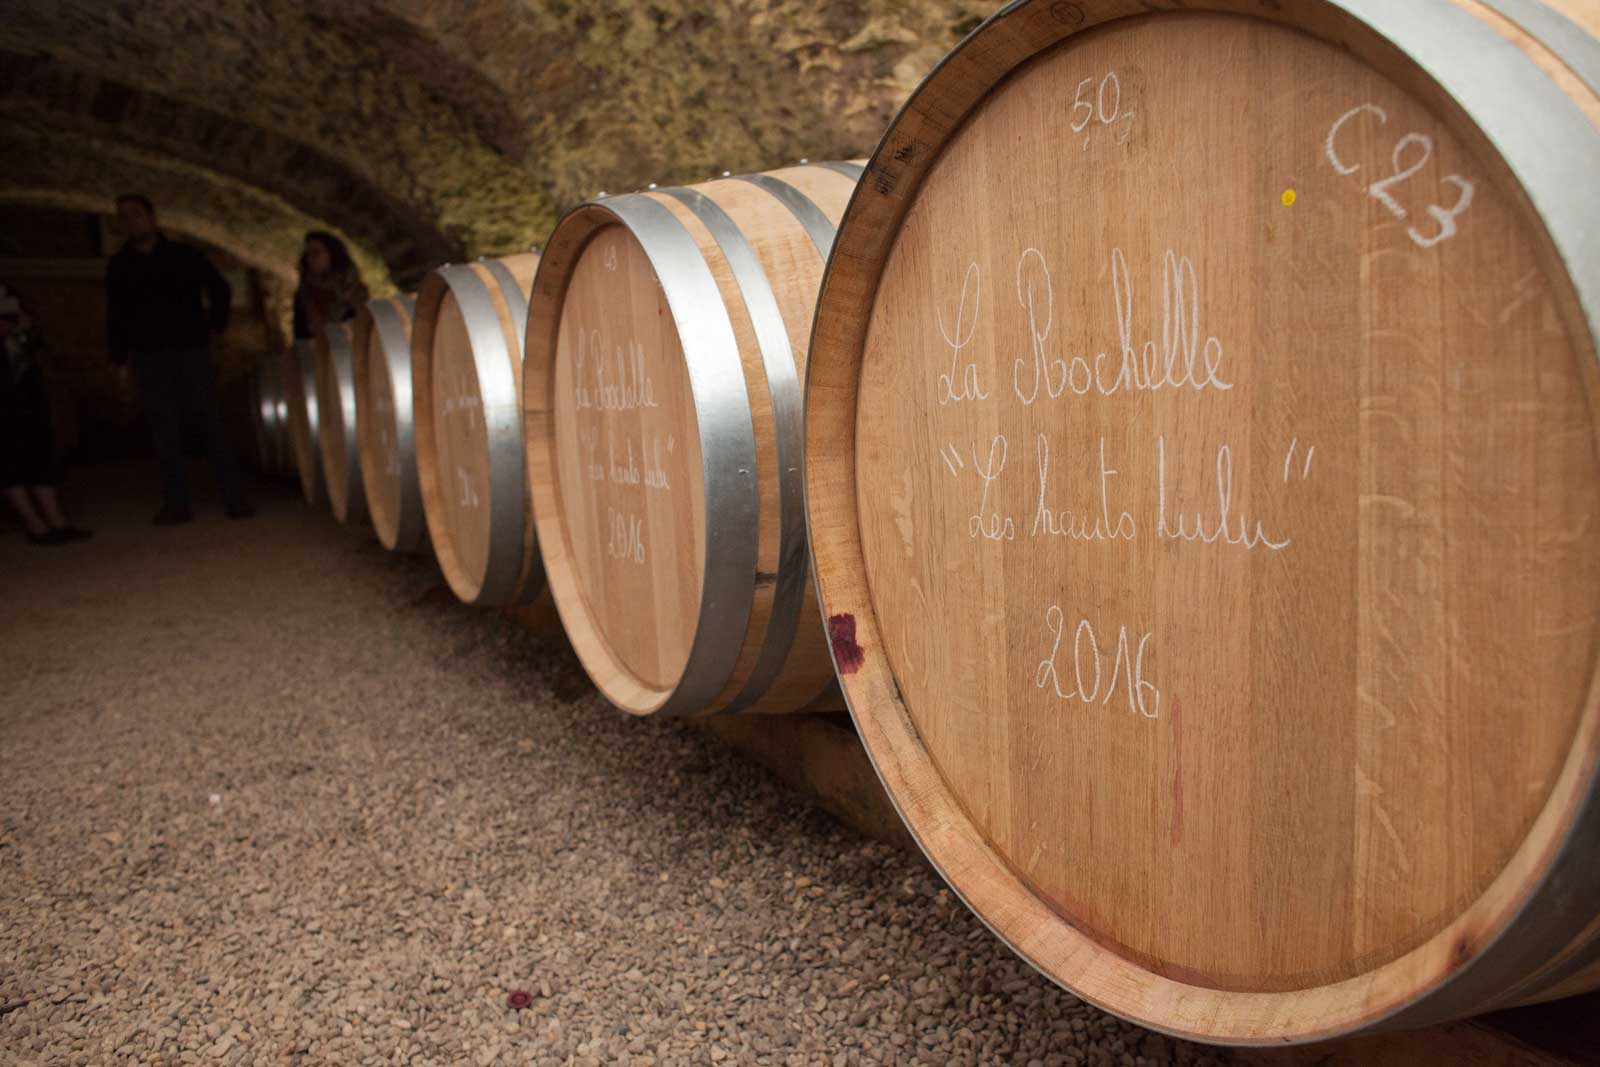 Barrels of Moulin-à-Vent age in the cellar at the château. ©Kevin Day/Opening a Bottle